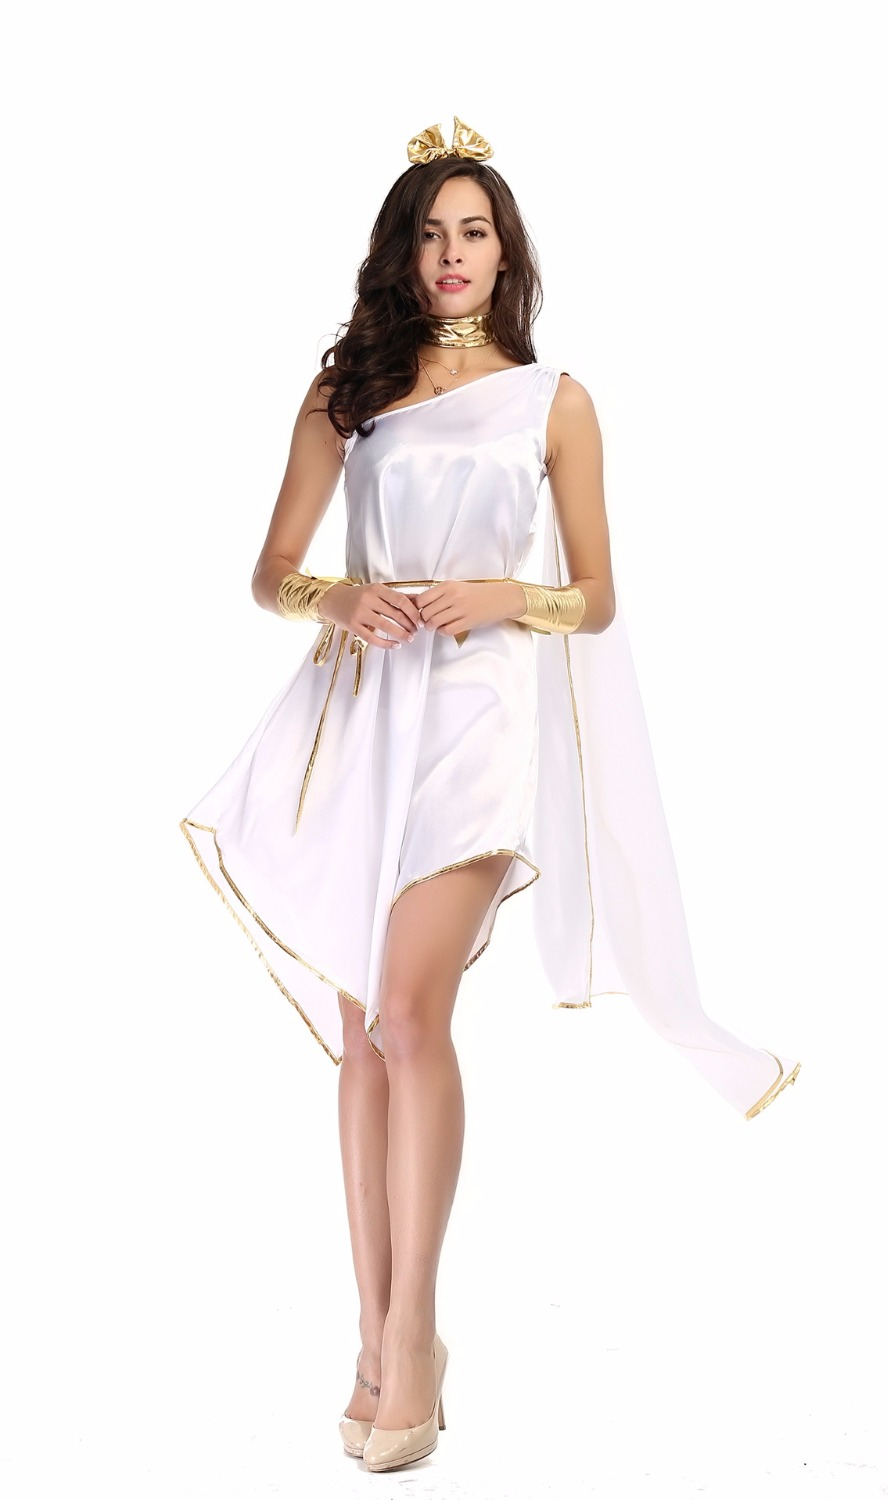 Halloween long dress For Women the adult woman Greek Goddess Cosplay Clothes Set White Loose Dress for party carnival